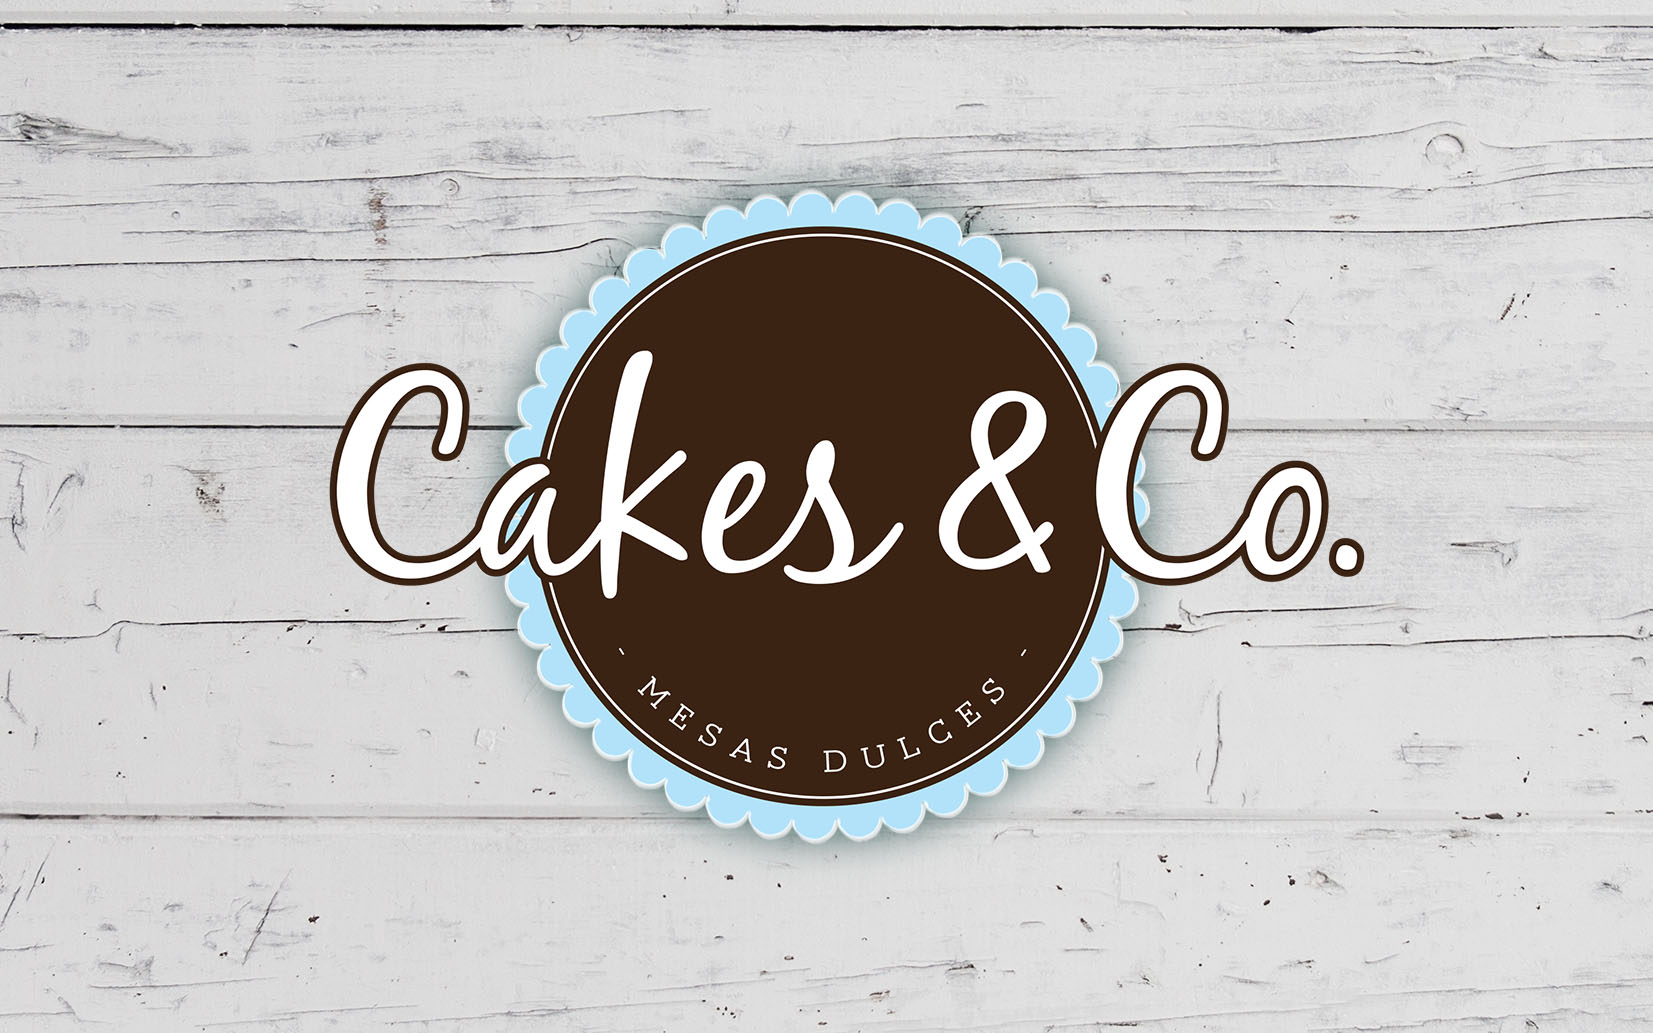 Cakes & Co